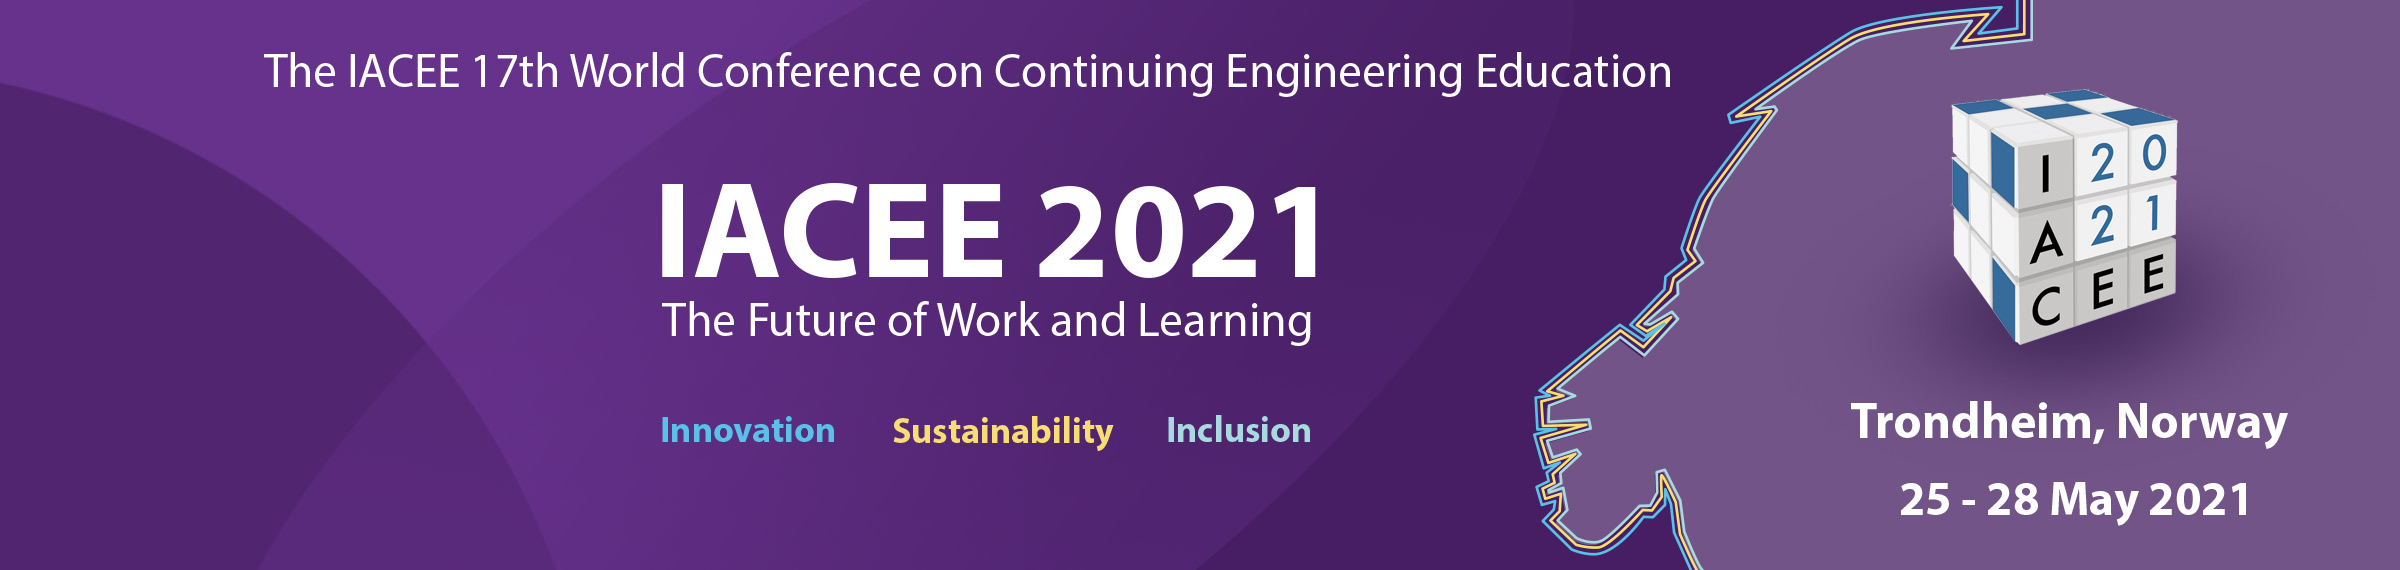 The 17th World Conference on Continuing Engineering Education. IACEE 2021 - The Future of Work and Learning. Innovation, Sustainability, Inclusion. 25-28 May 2021, Trondheim, Norway.